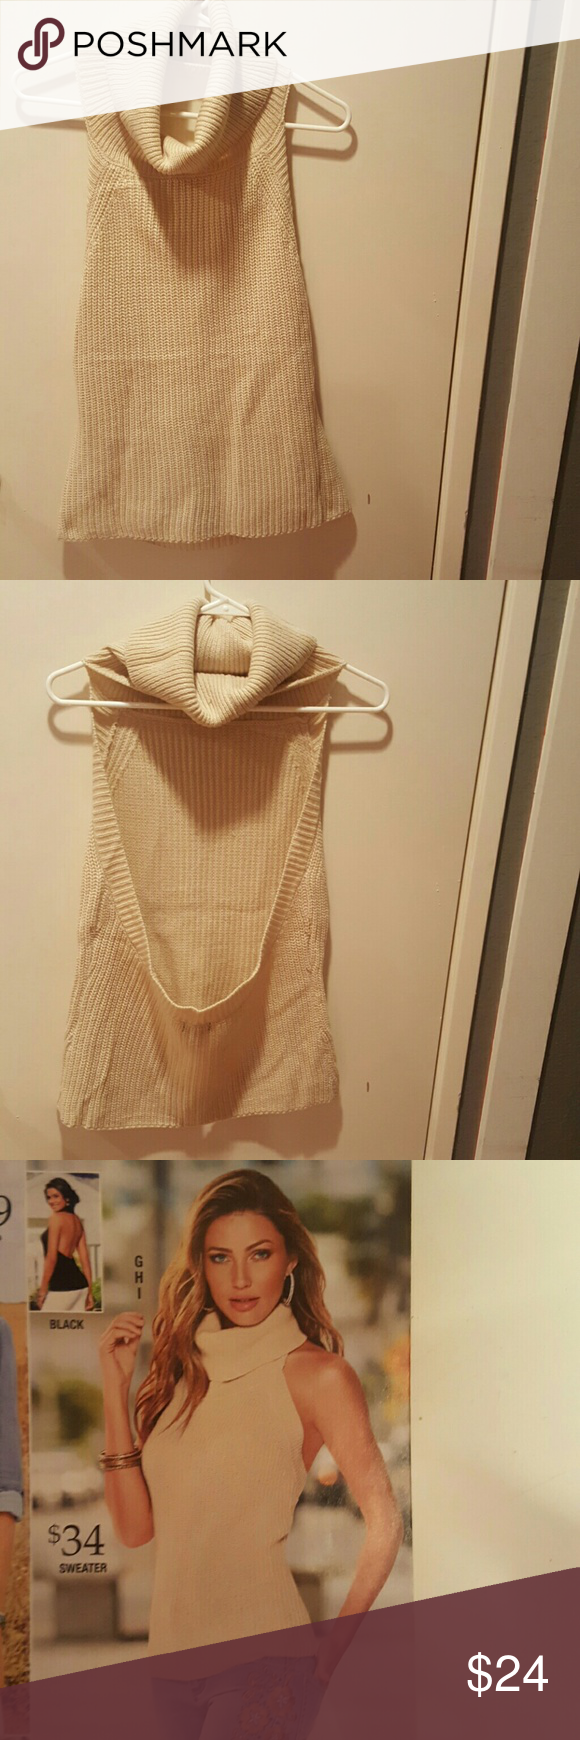 Beautiful Backless Cream Colored Cowl Neck Sweater This sweater is ...